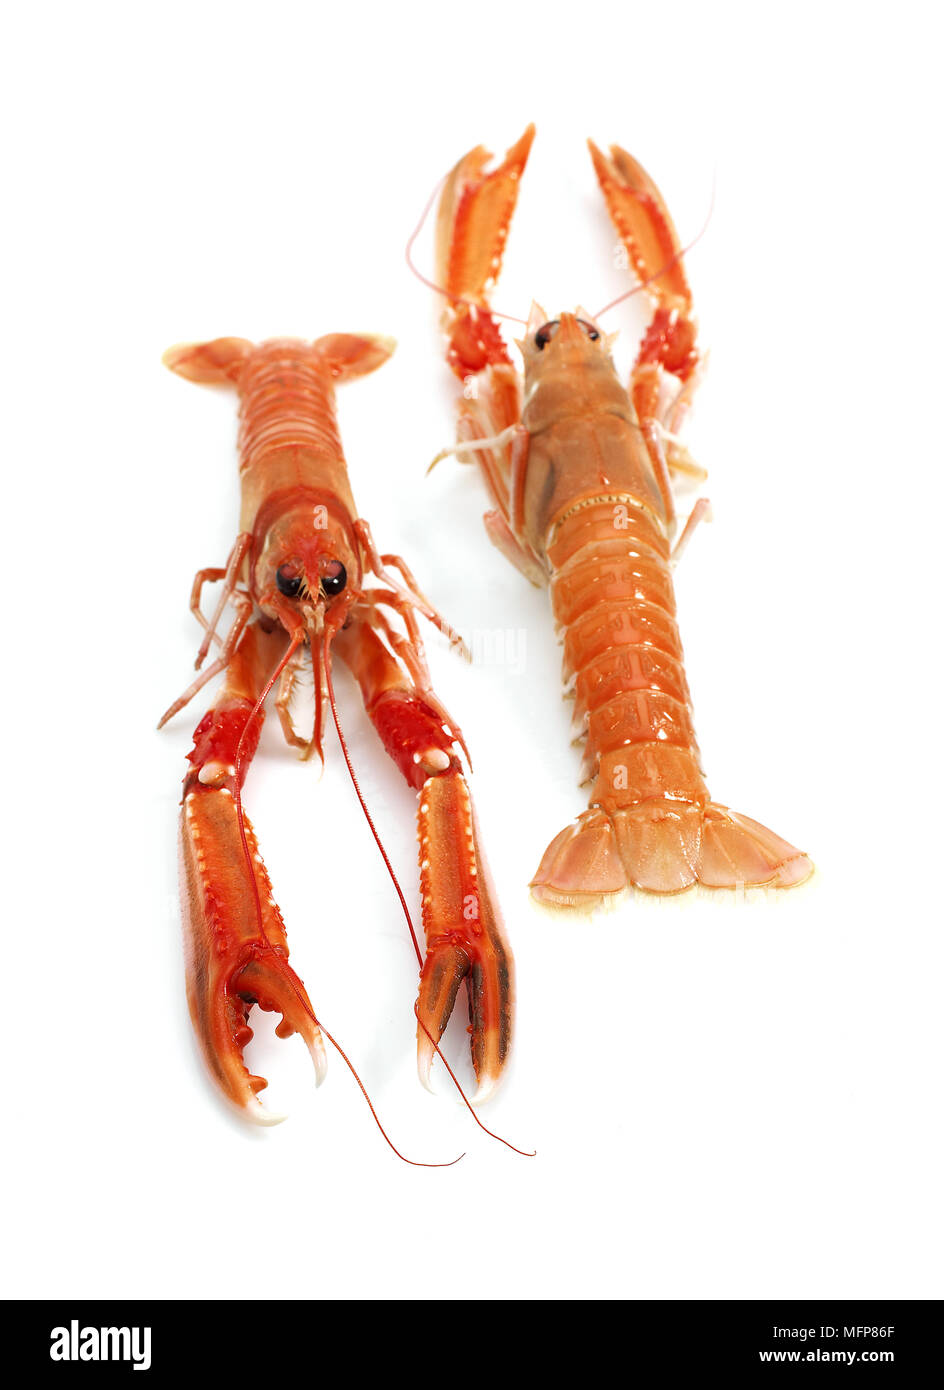 Dublin Bay Prawn or Norway Lobster or Scampi, nephrops norvegicus against White Background - Stock Image